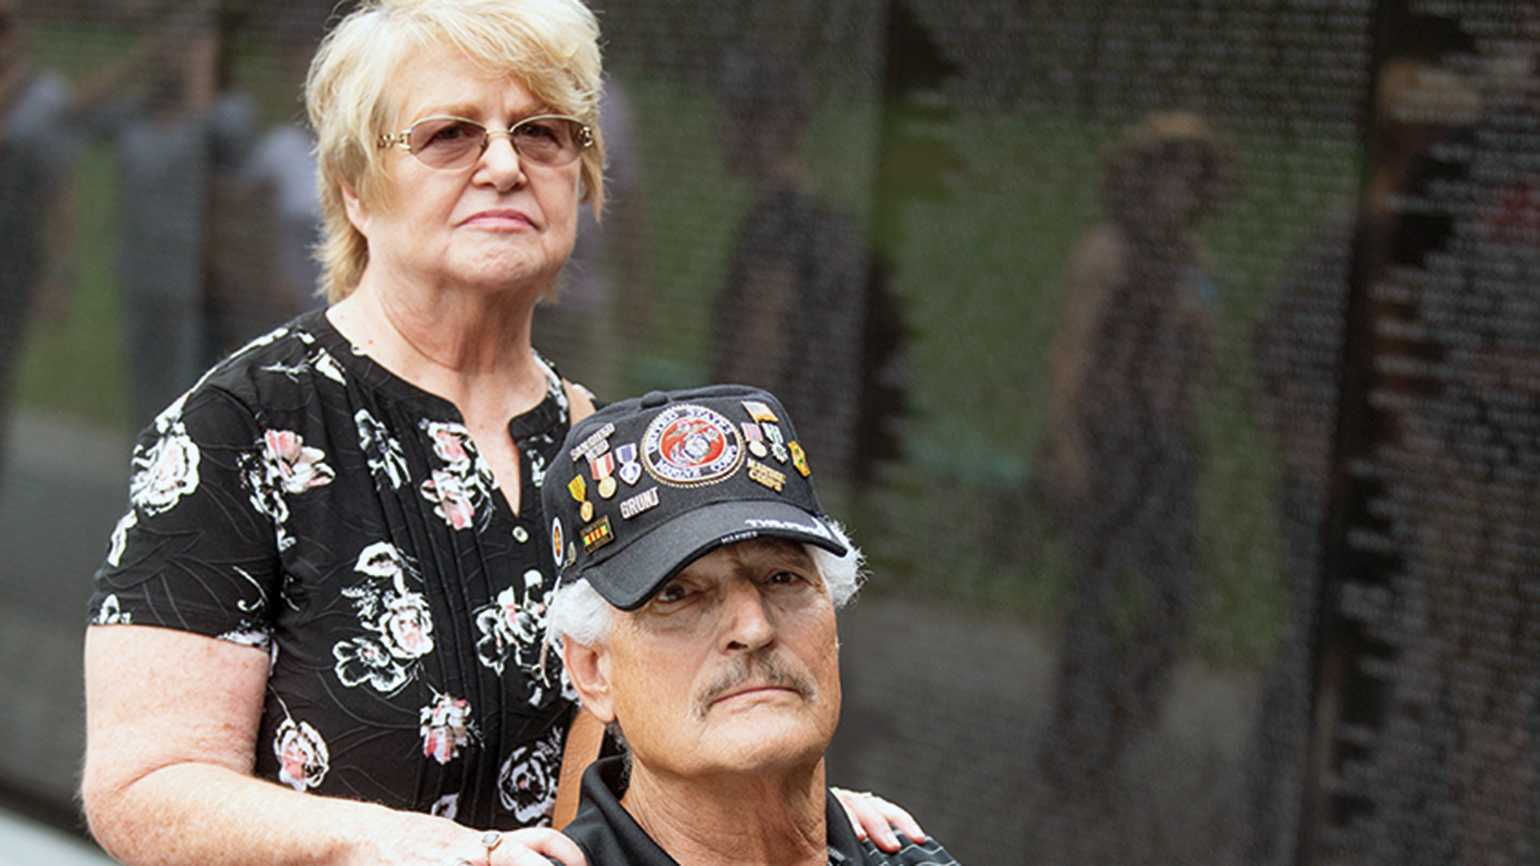 Eddie and his wife, Connie, on a recent visit to the Vietnam Veterans Memorial, in Washington, D.C.